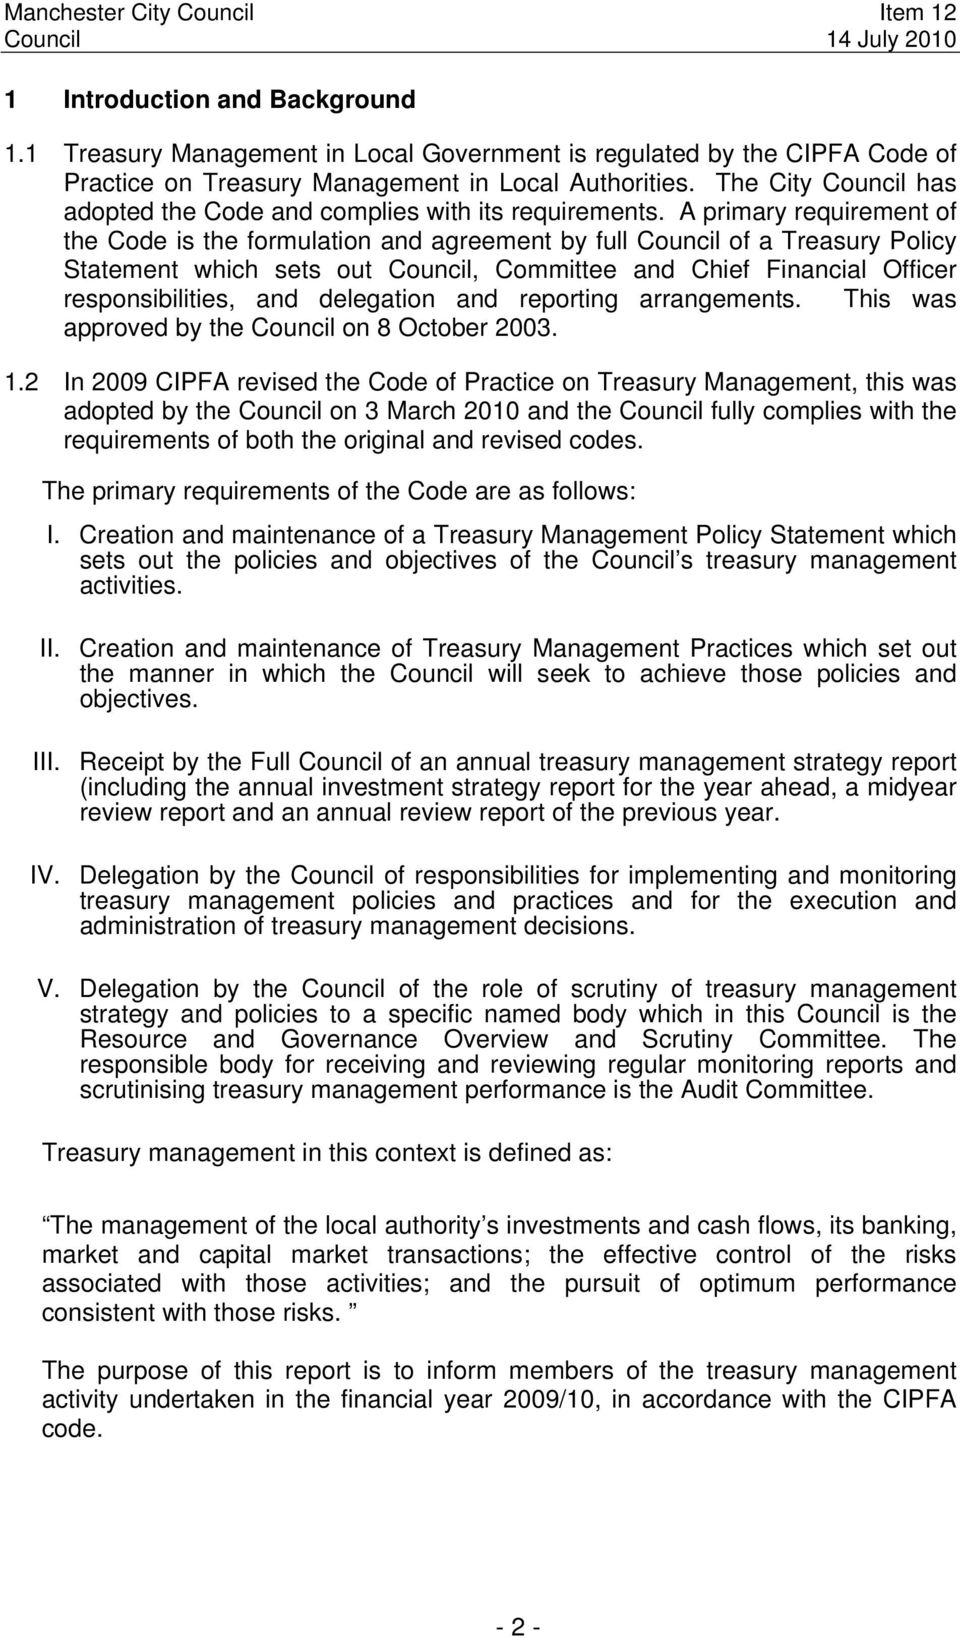 A primary requirement of the Code is the formulation and agreement by full Council of a Treasury Policy Statement which sets out Council, Committee and Chief Financial Officer responsibilities, and